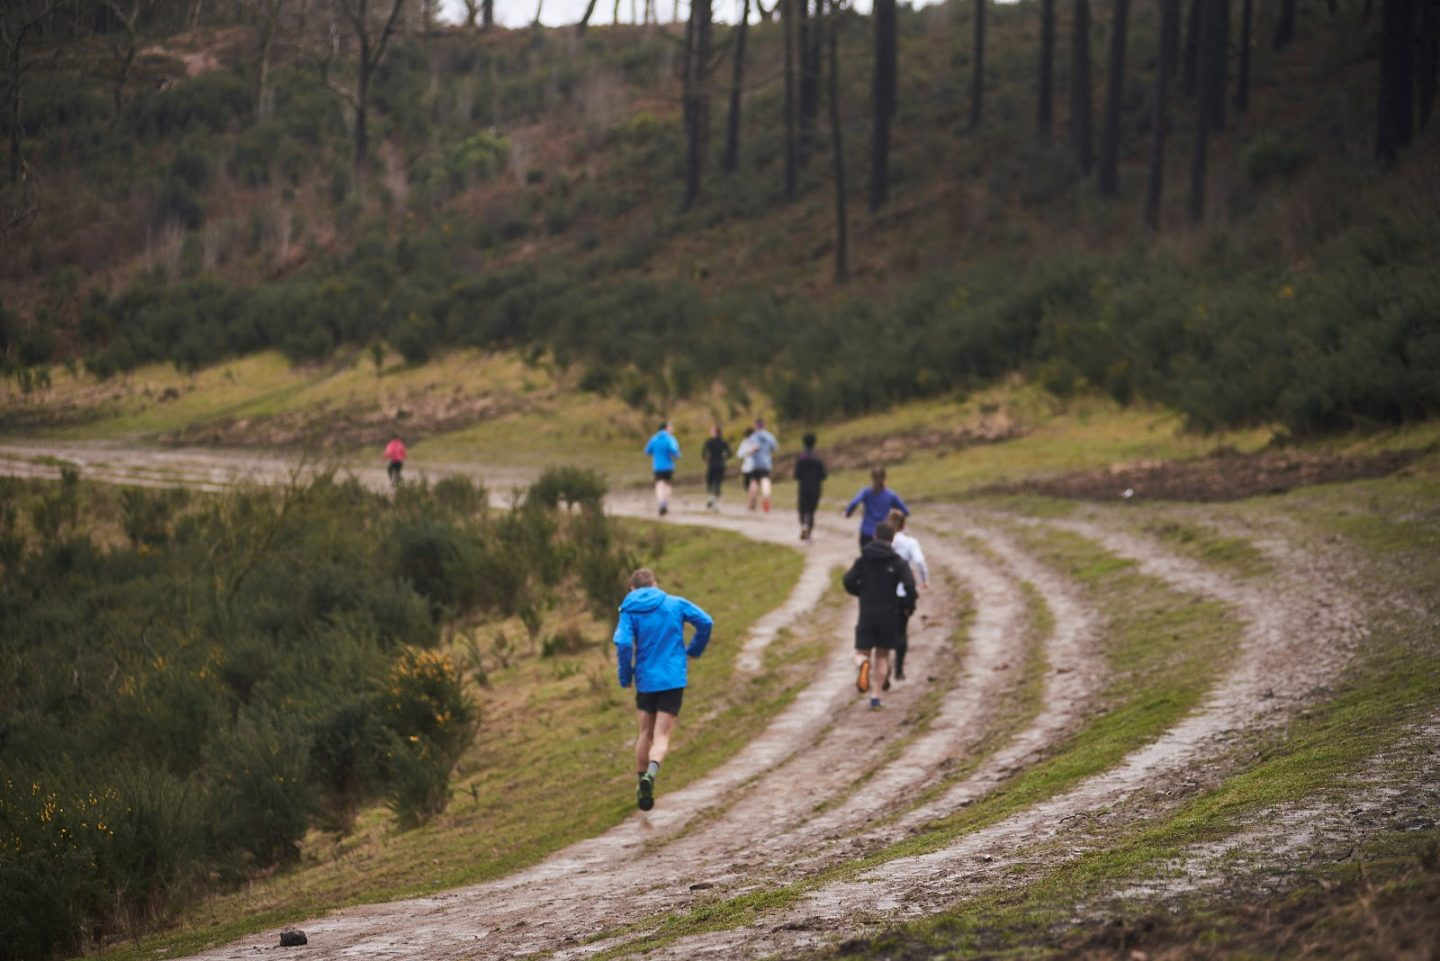 trail running photography workshop - Photo Credit: James Carnegie on behalf of Stance Europe